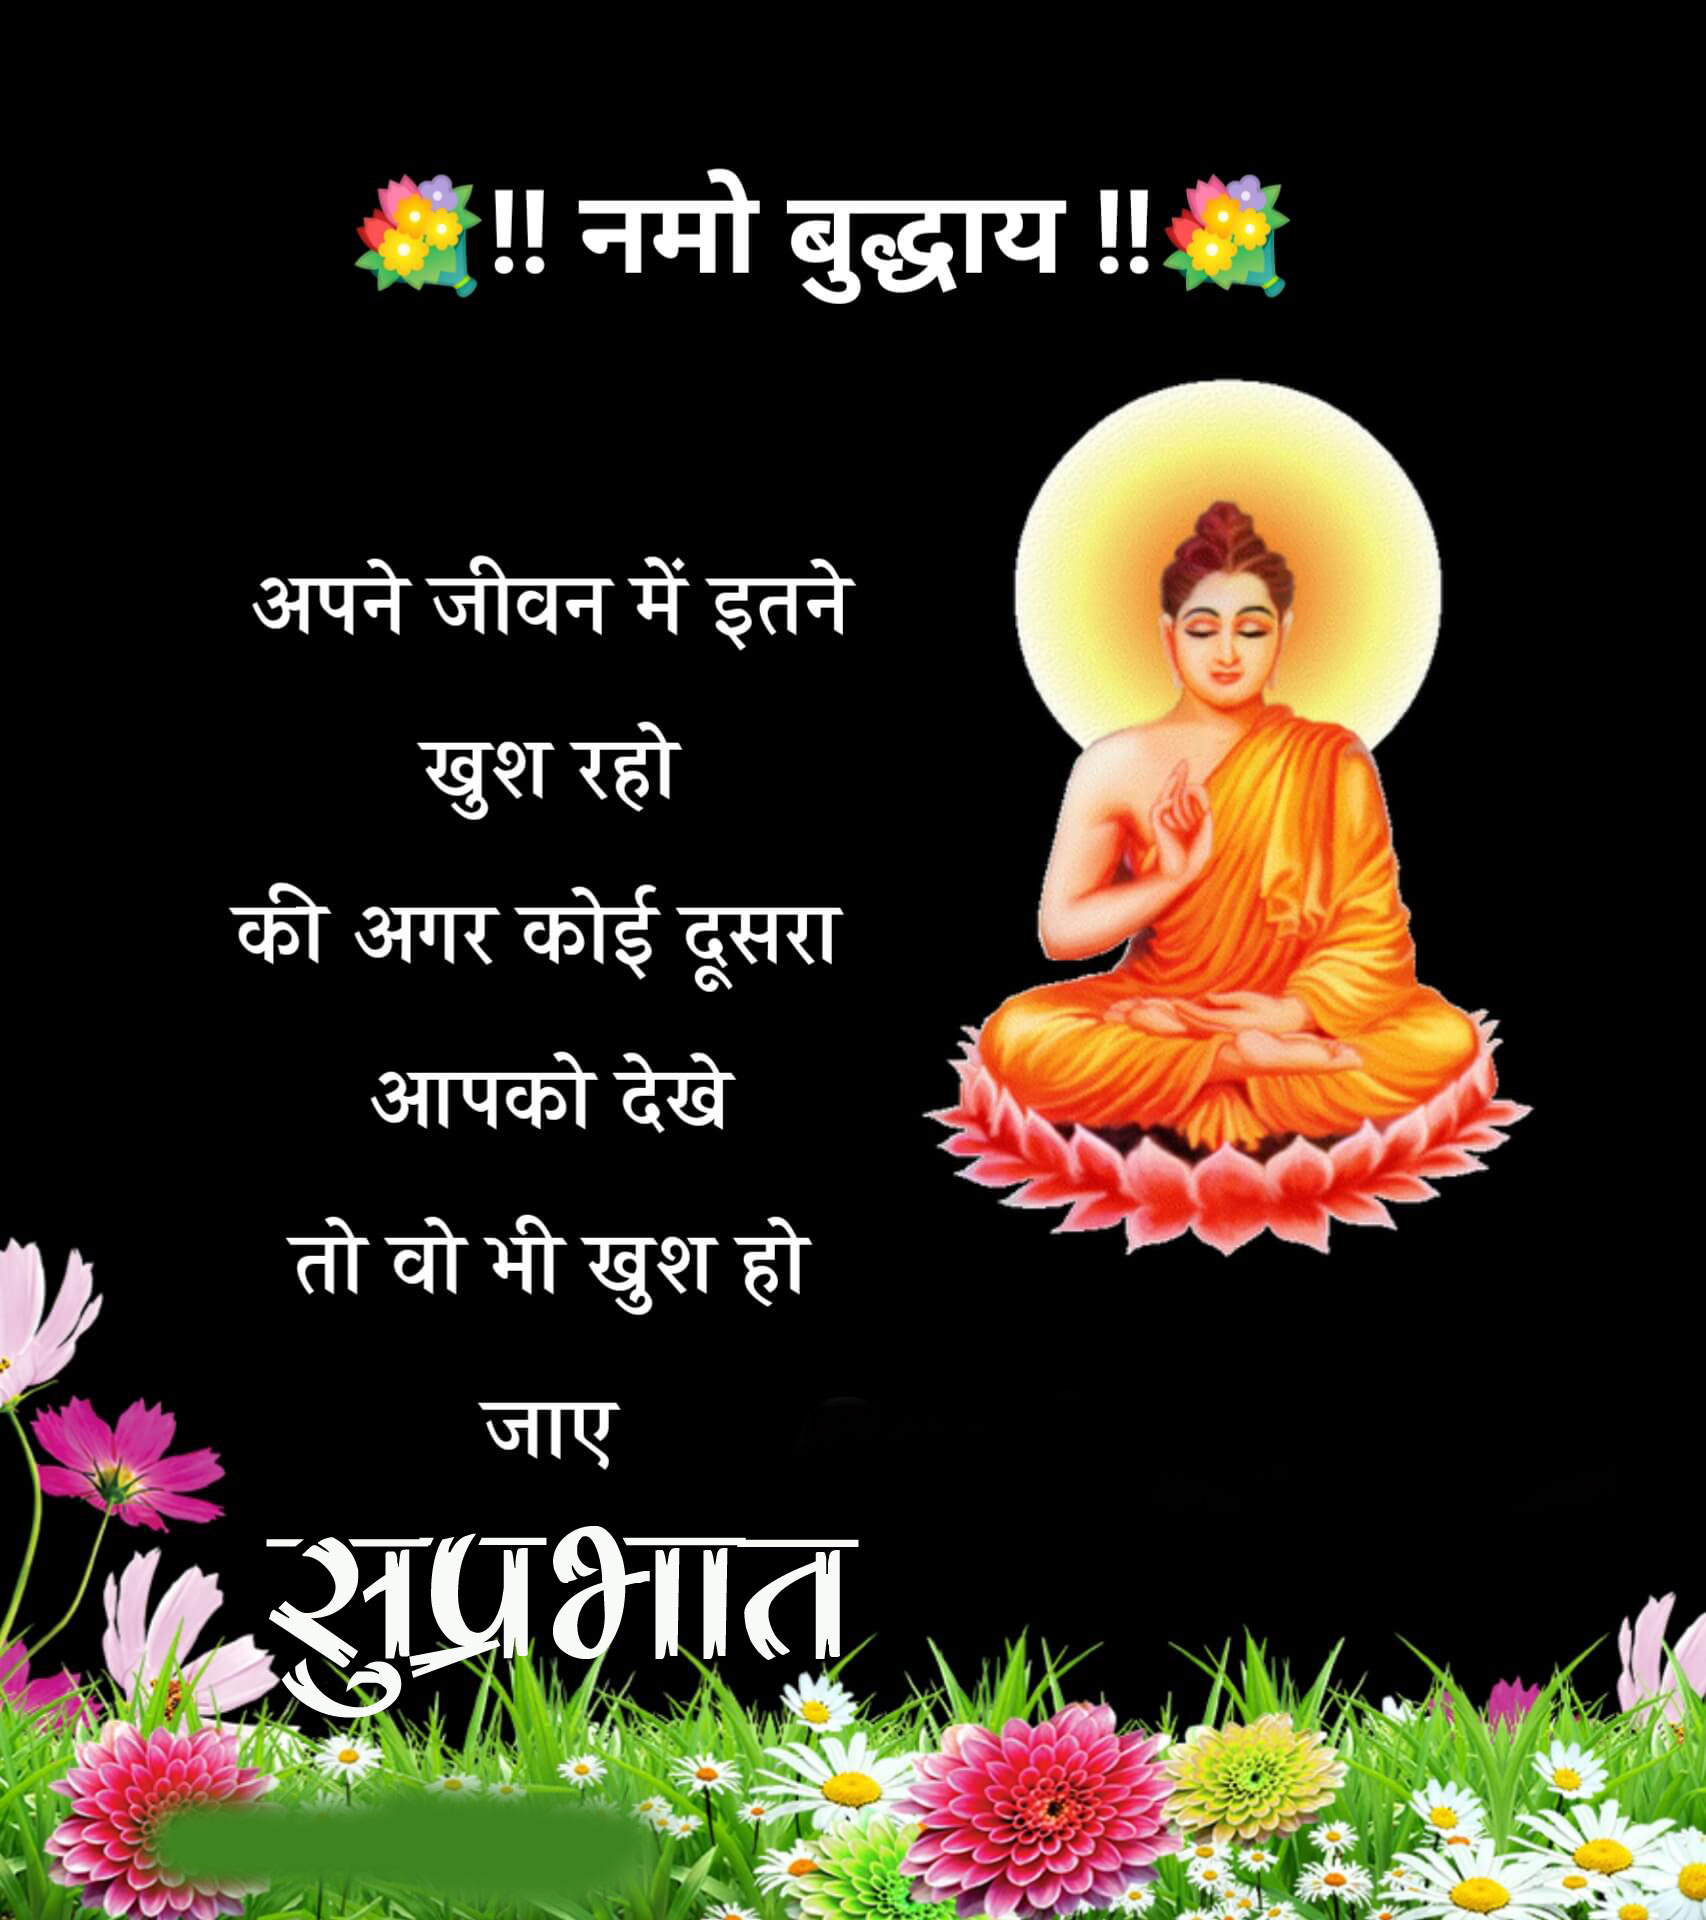 Suprabhat Images download